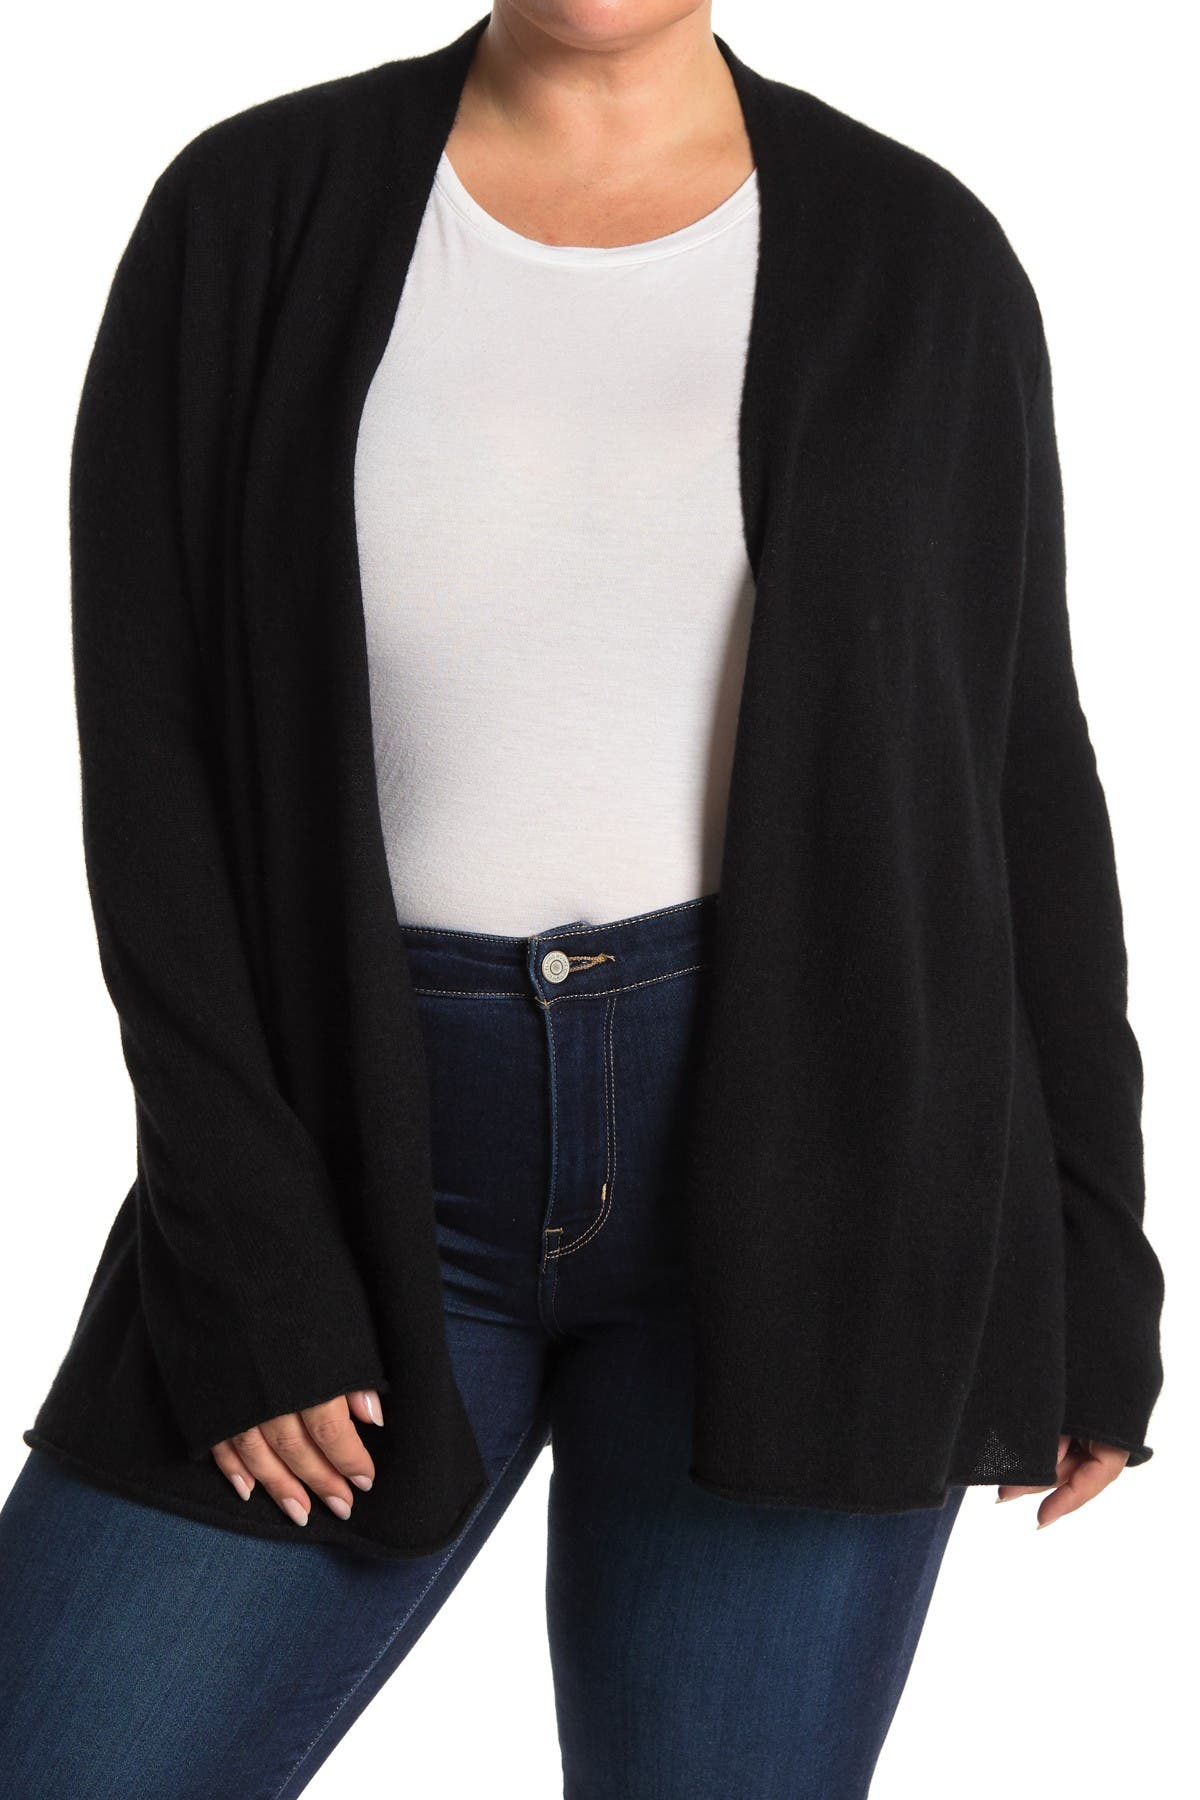 Image of GRIFFEN CASHMERE Long Sleeve Open Front Cashmere Cardigan